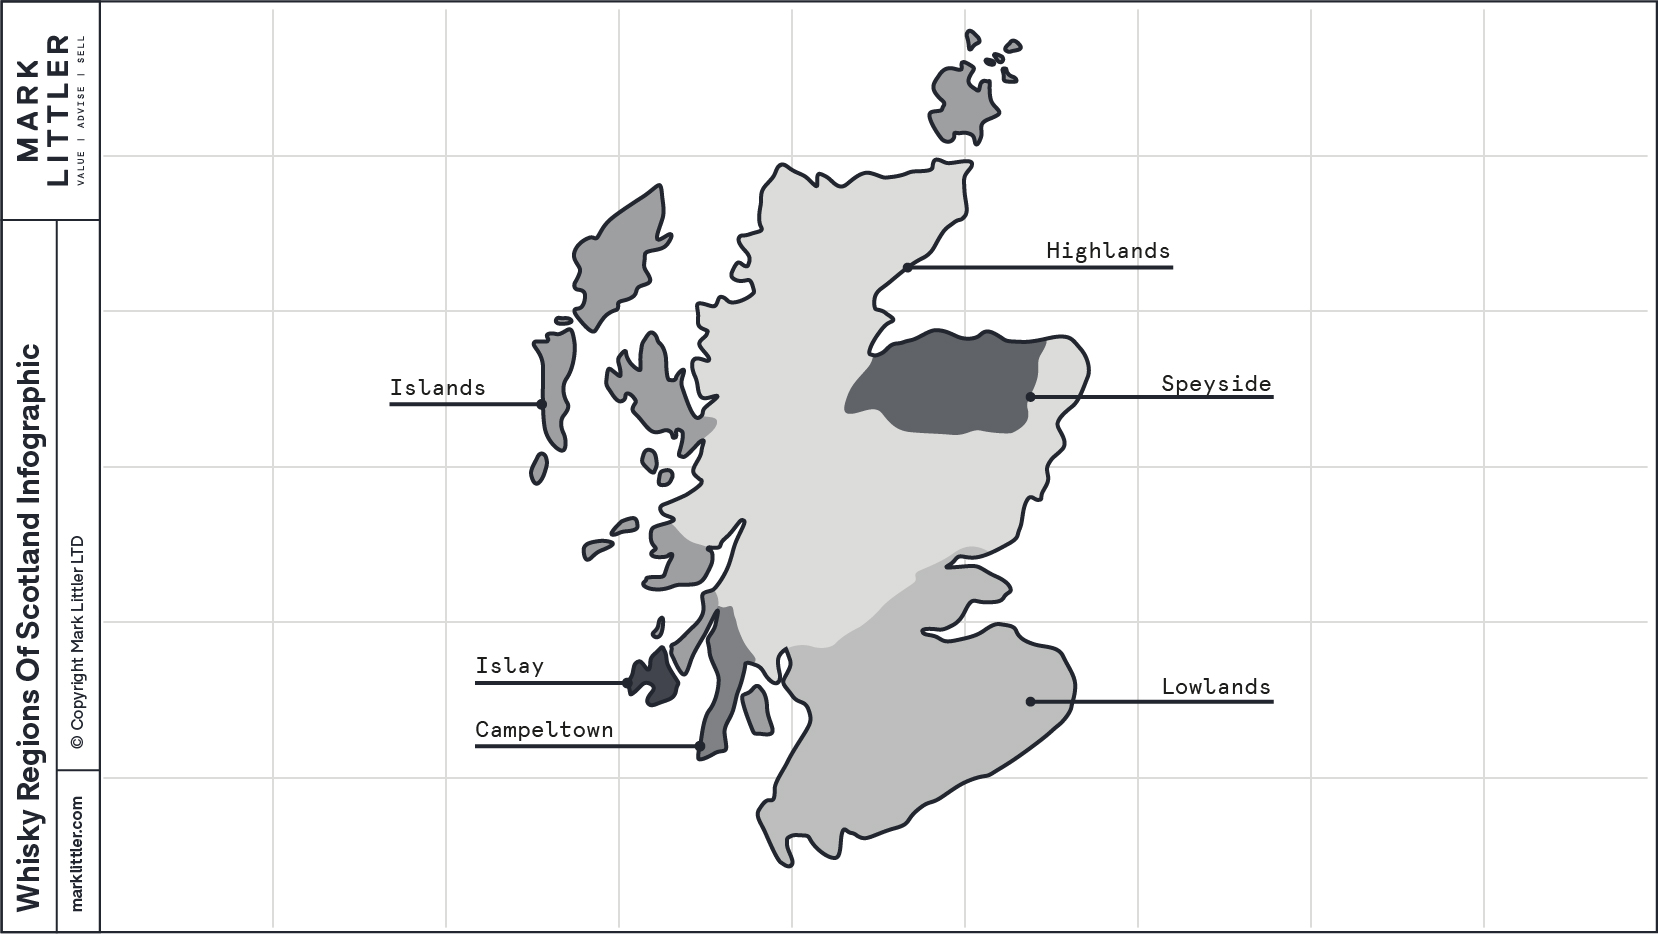 Whisky Regions of Scotland Infographic-100